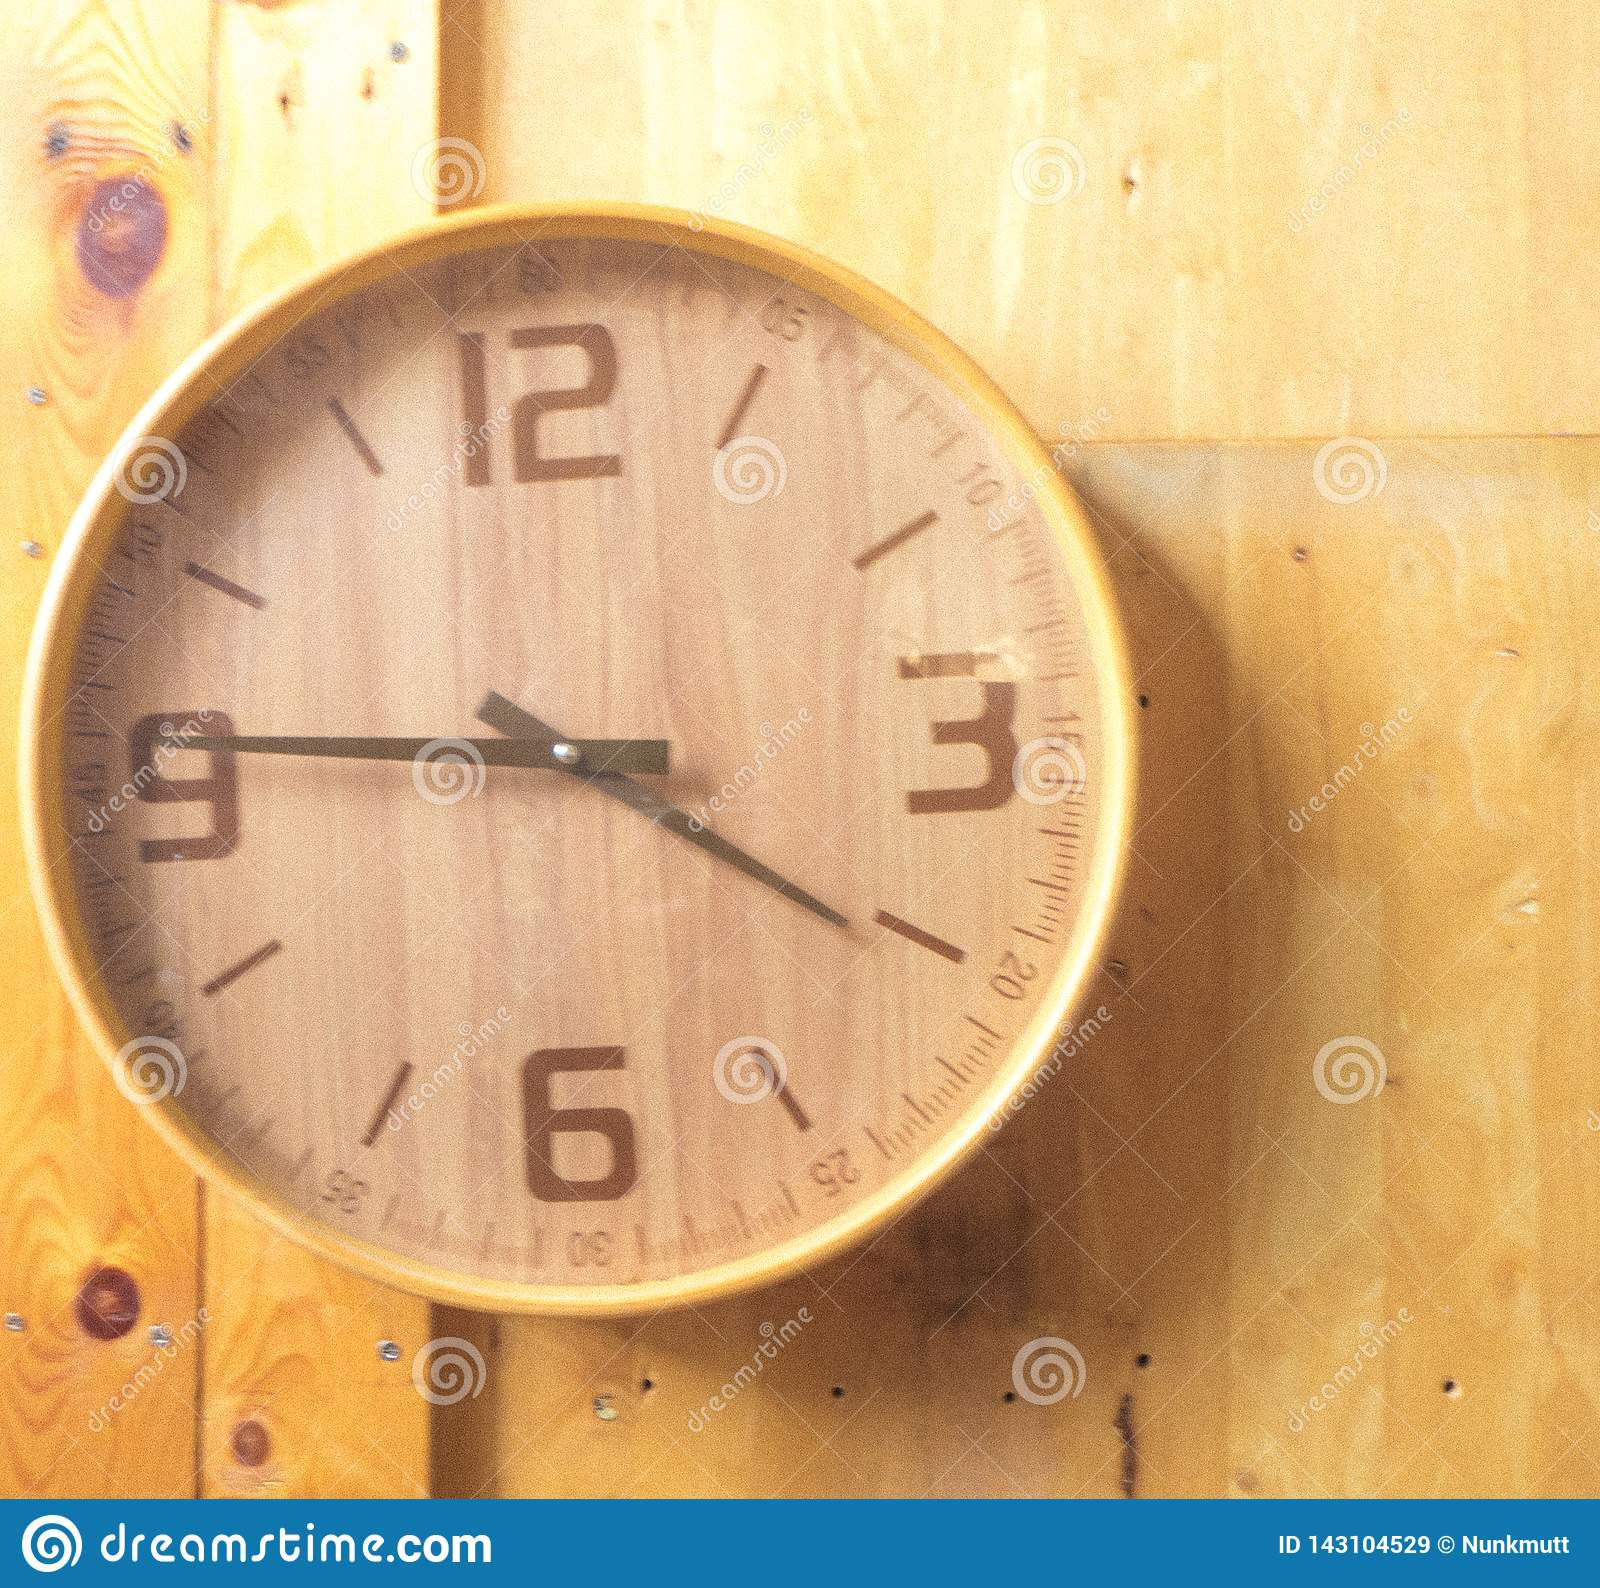 Wooden round wall watch - clock on wooden background eco nature background